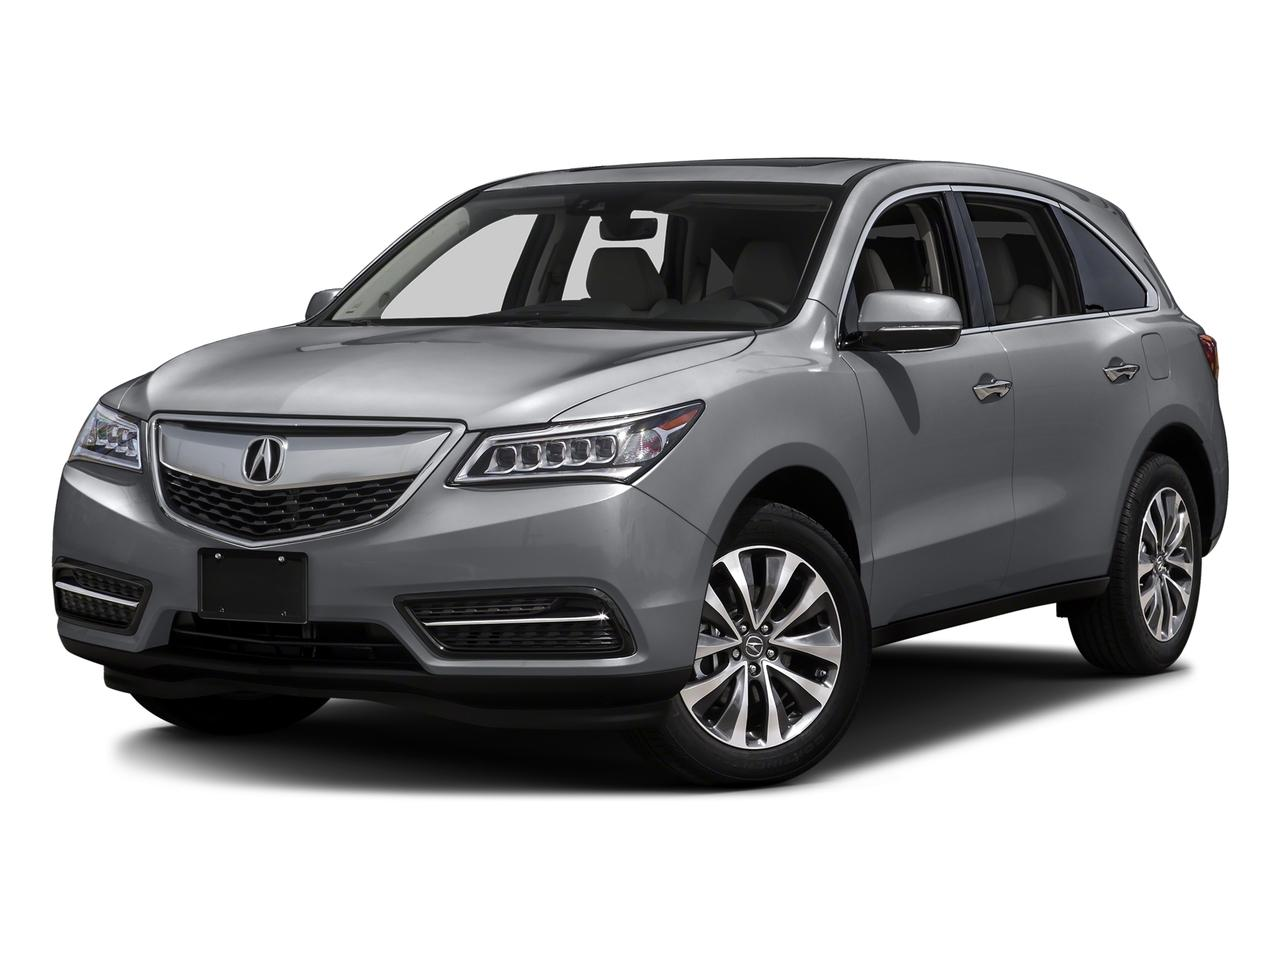 2016 Acura MDX Vehicle Photo in Portland, OR 97225